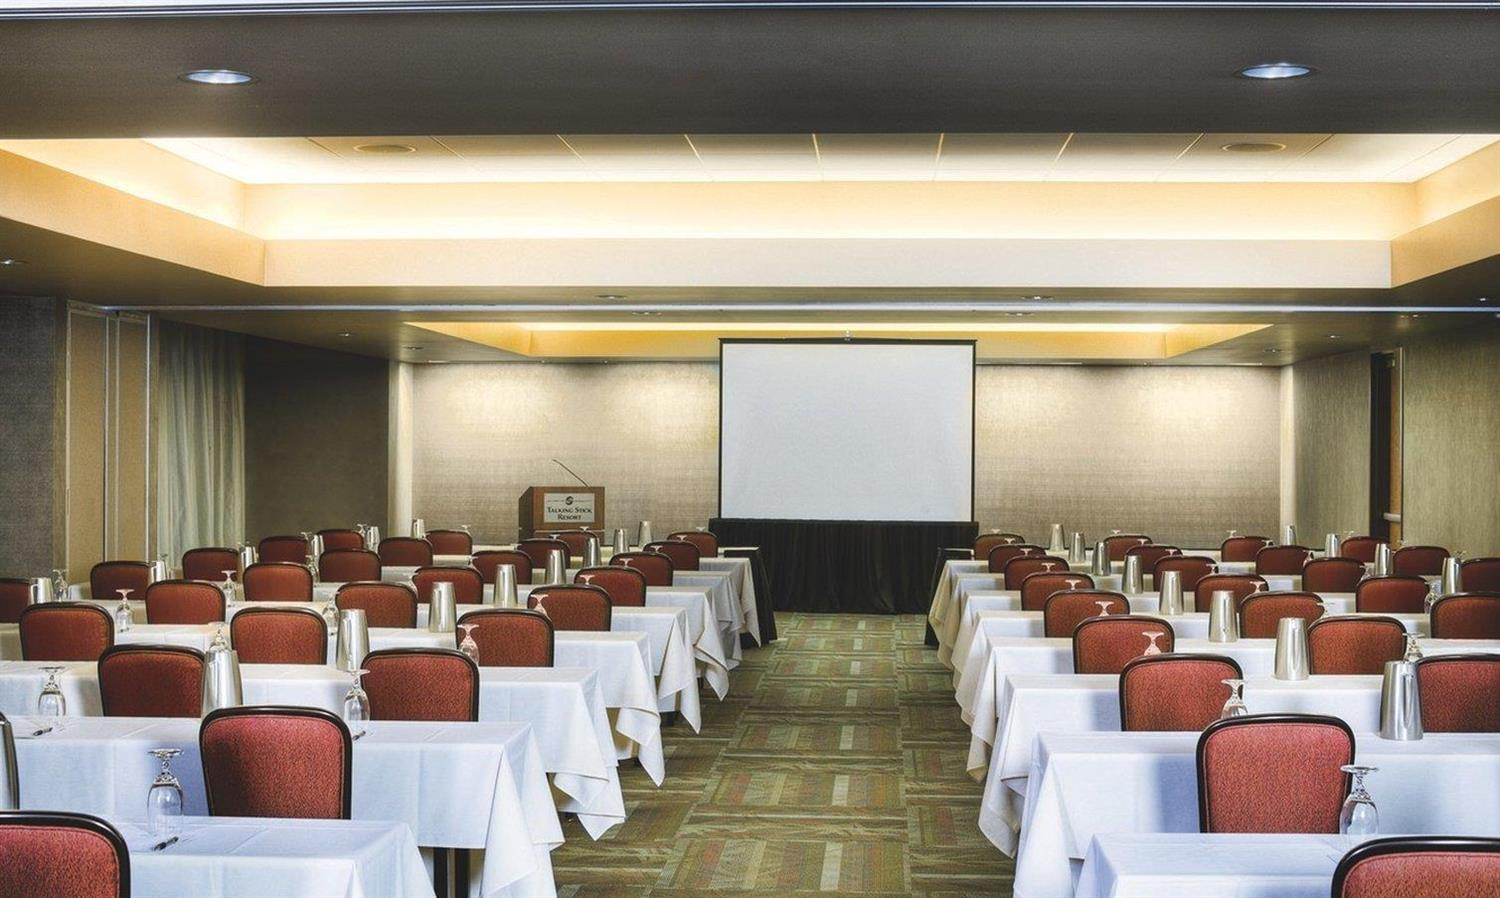 Restaurants In South Scottsdale With Meeting Rooms